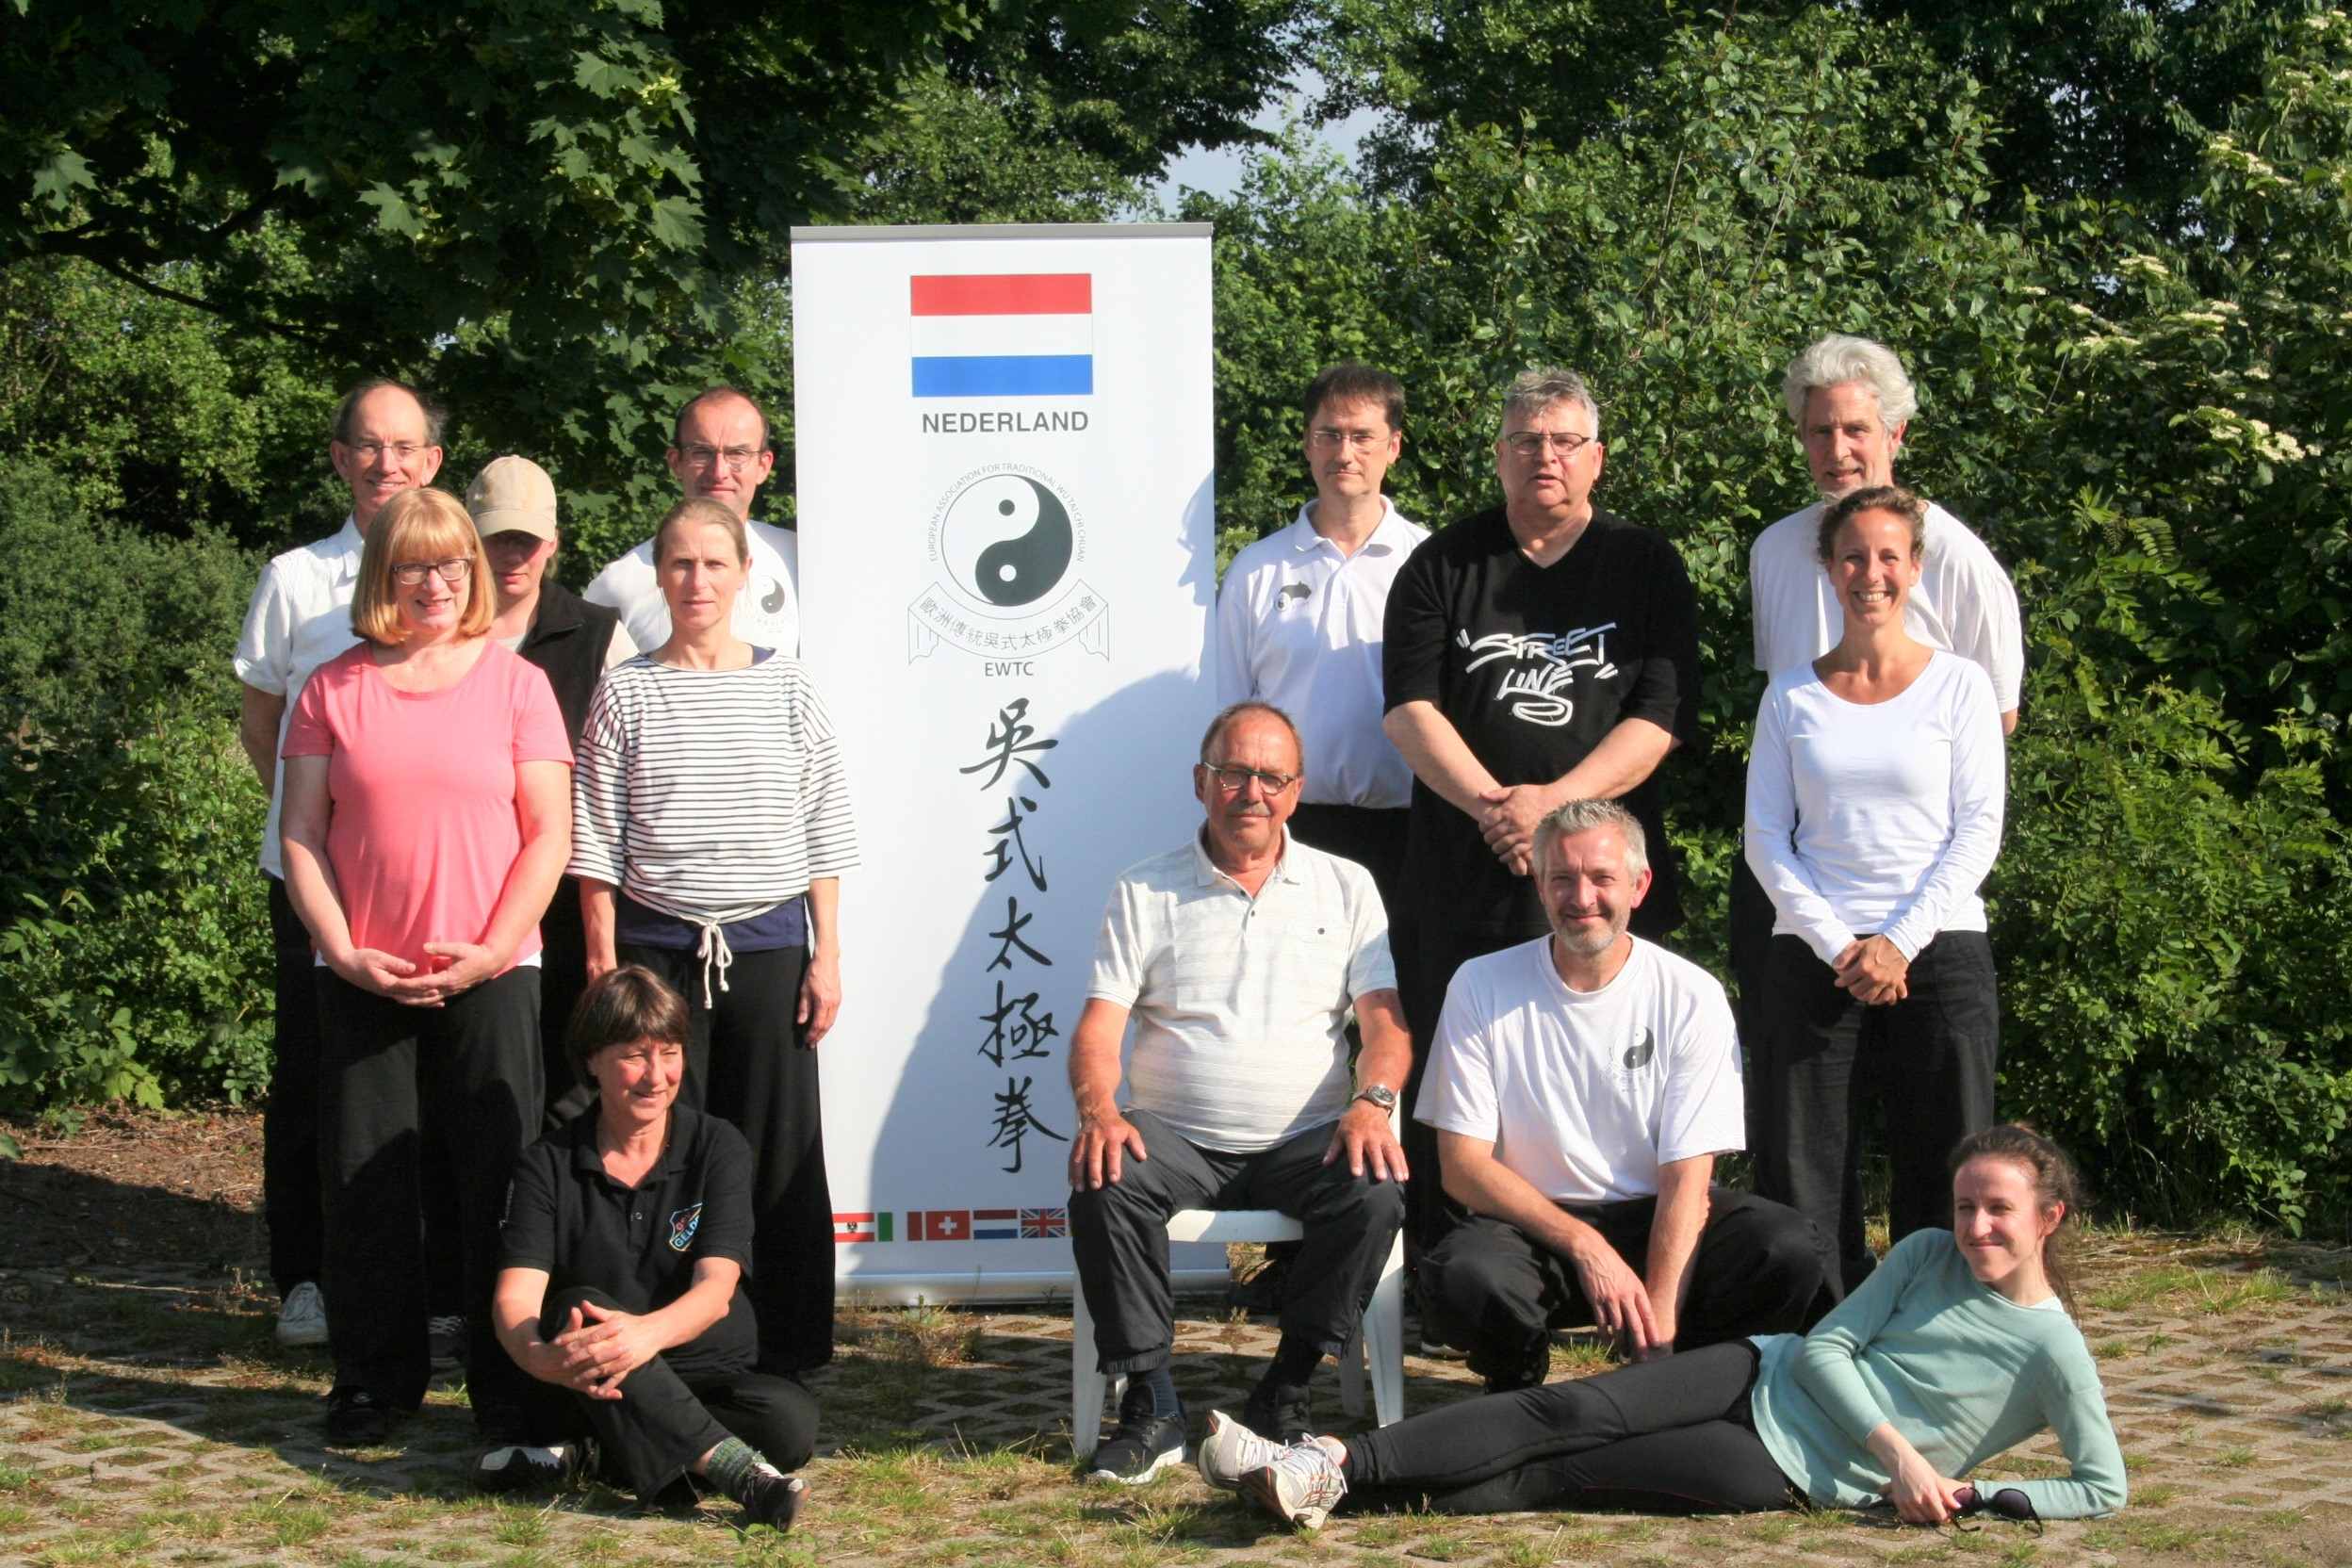 Looking back on Whitsun seminar 2018- Terugblik op het Pinksterseminar